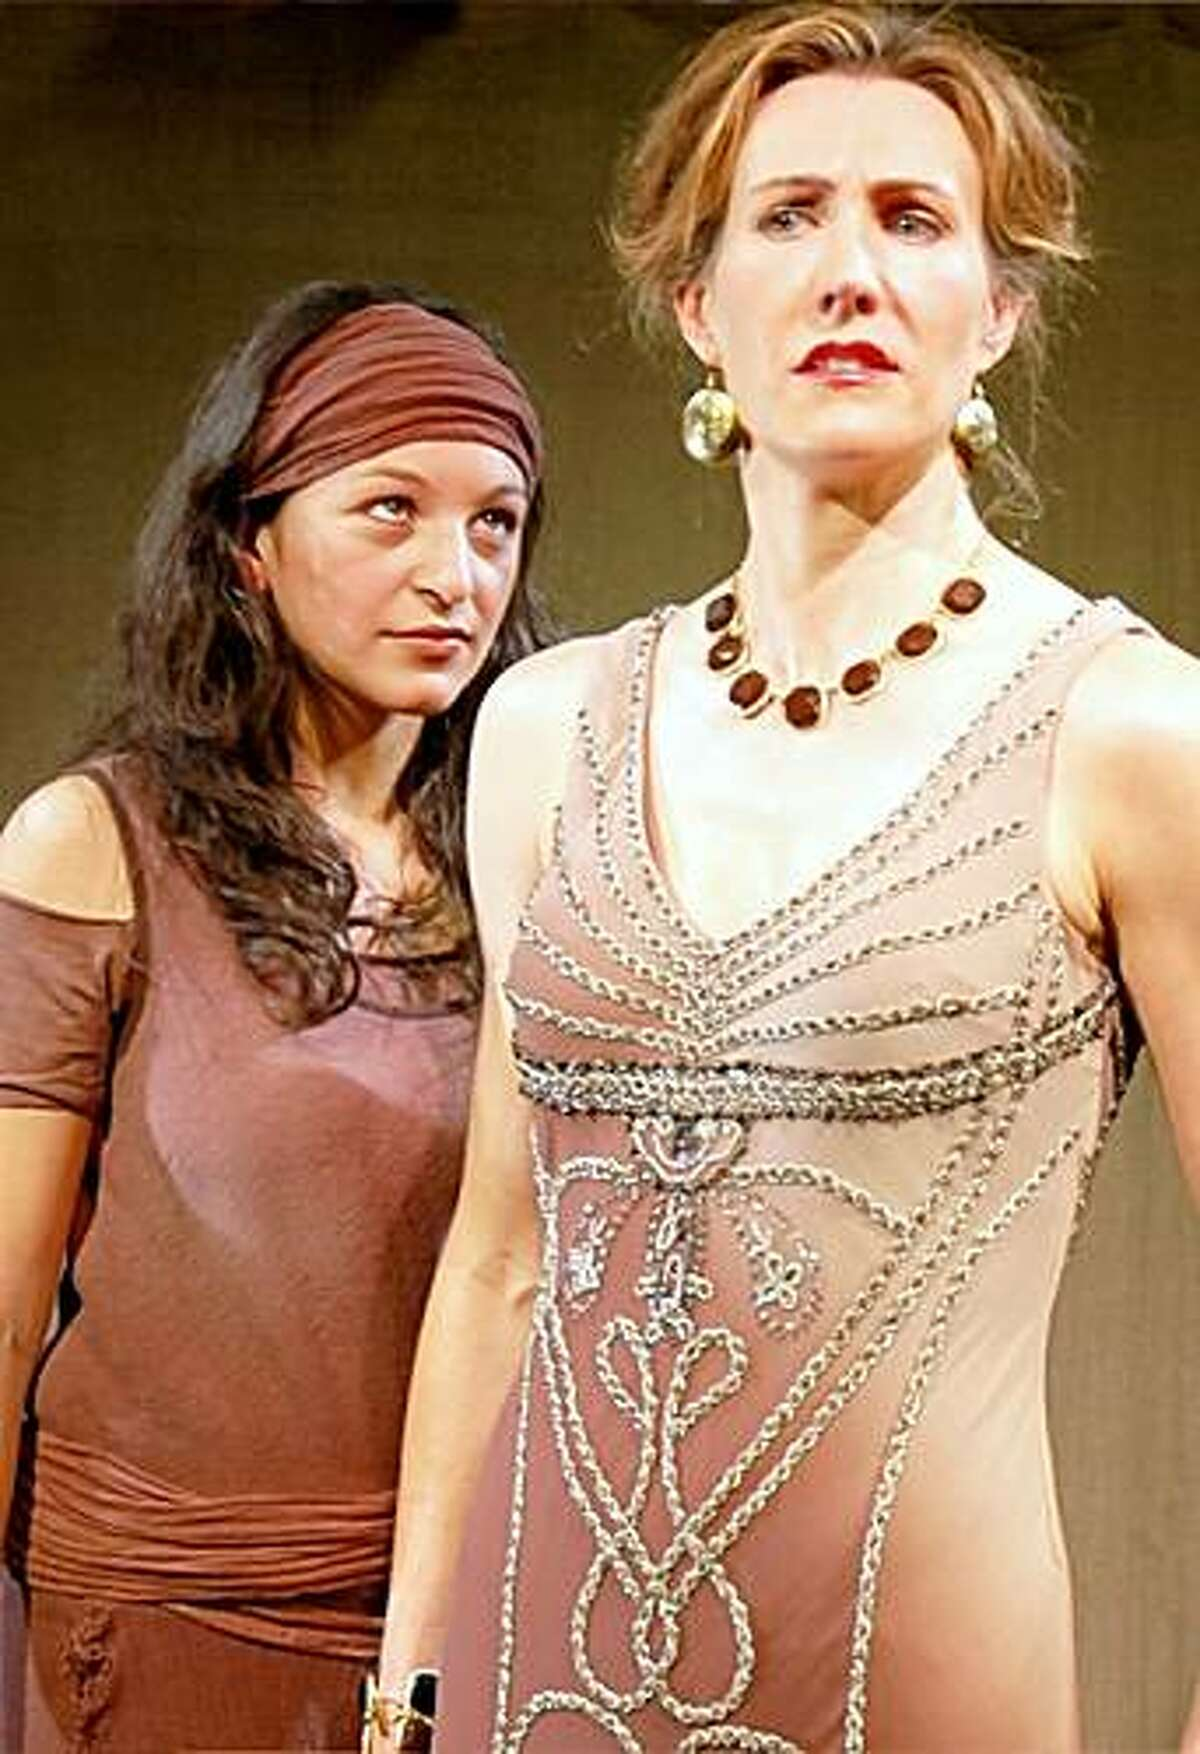 Valentina Conde (left, accent / over e in Conde) plays the vengeful Electra and Courtney Walsh is her ill-fated mother Clytemnestra in Stanford Summer Theater's staging of Sophocles'